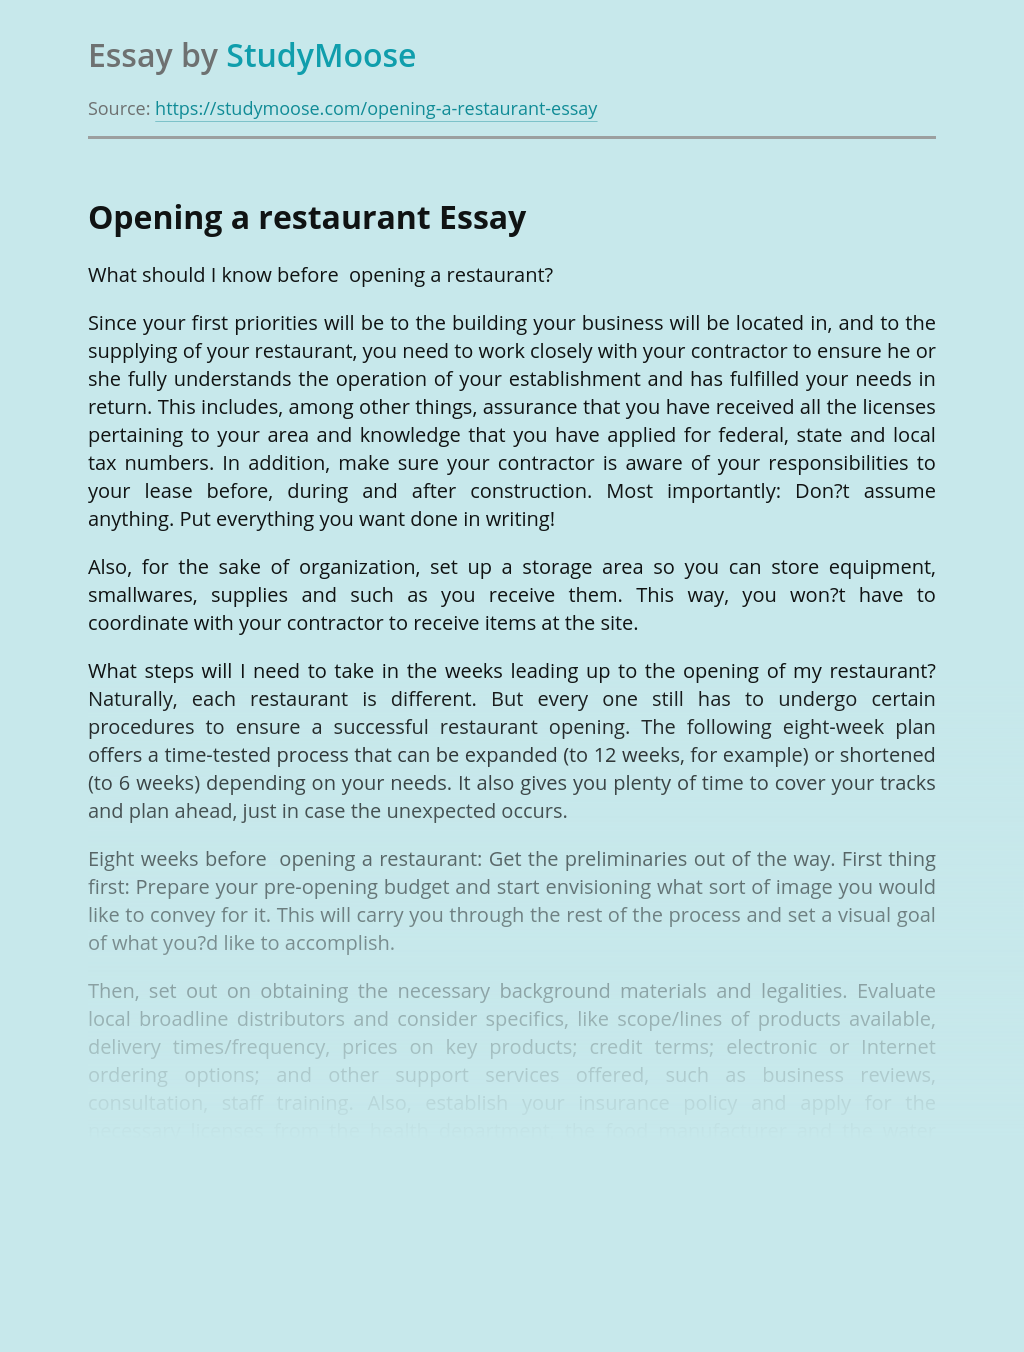 Opening a restaurant